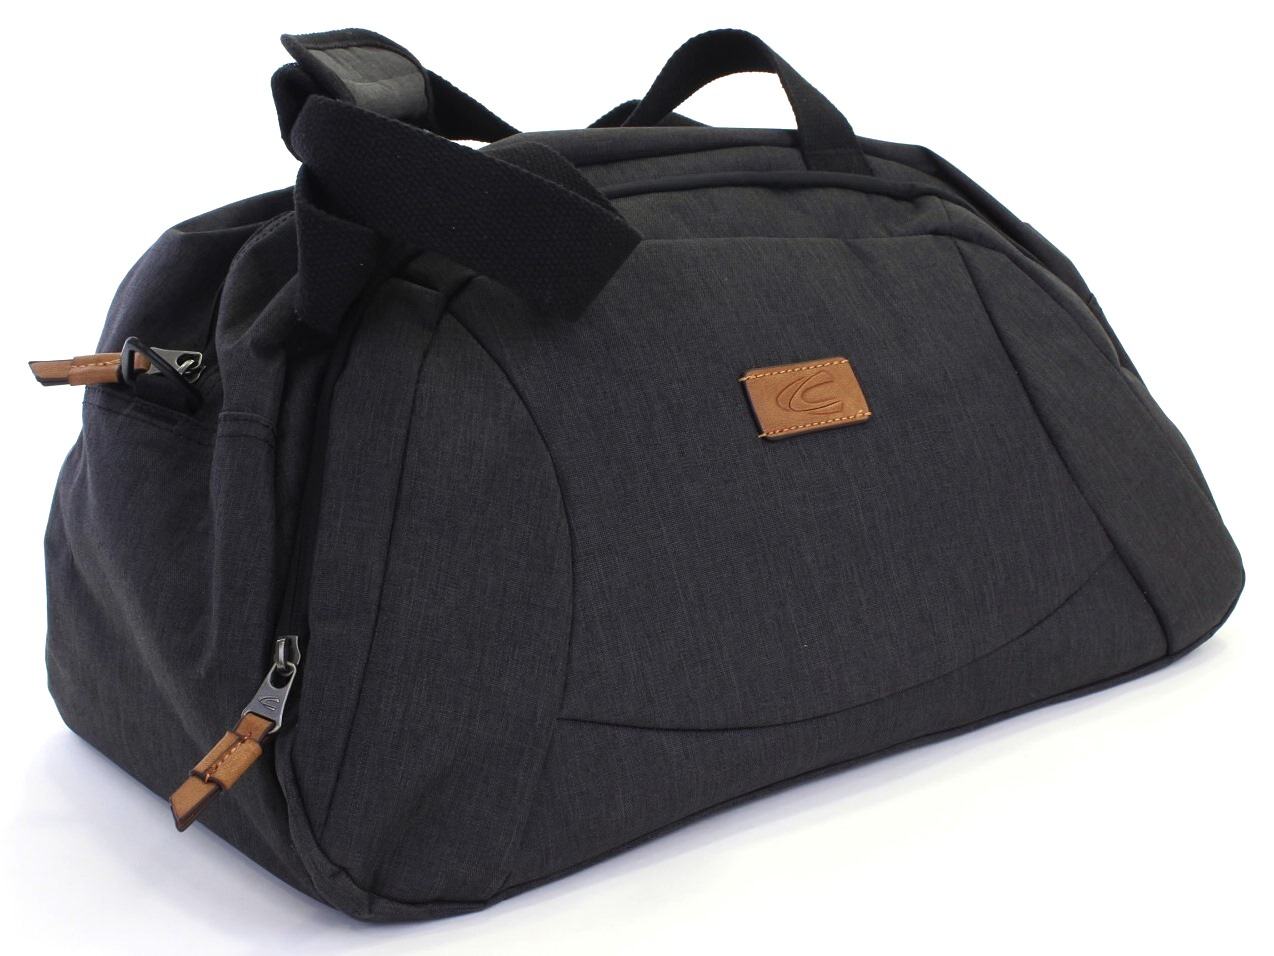 Briefcases, Travel Bags Camel Active - 385 295101